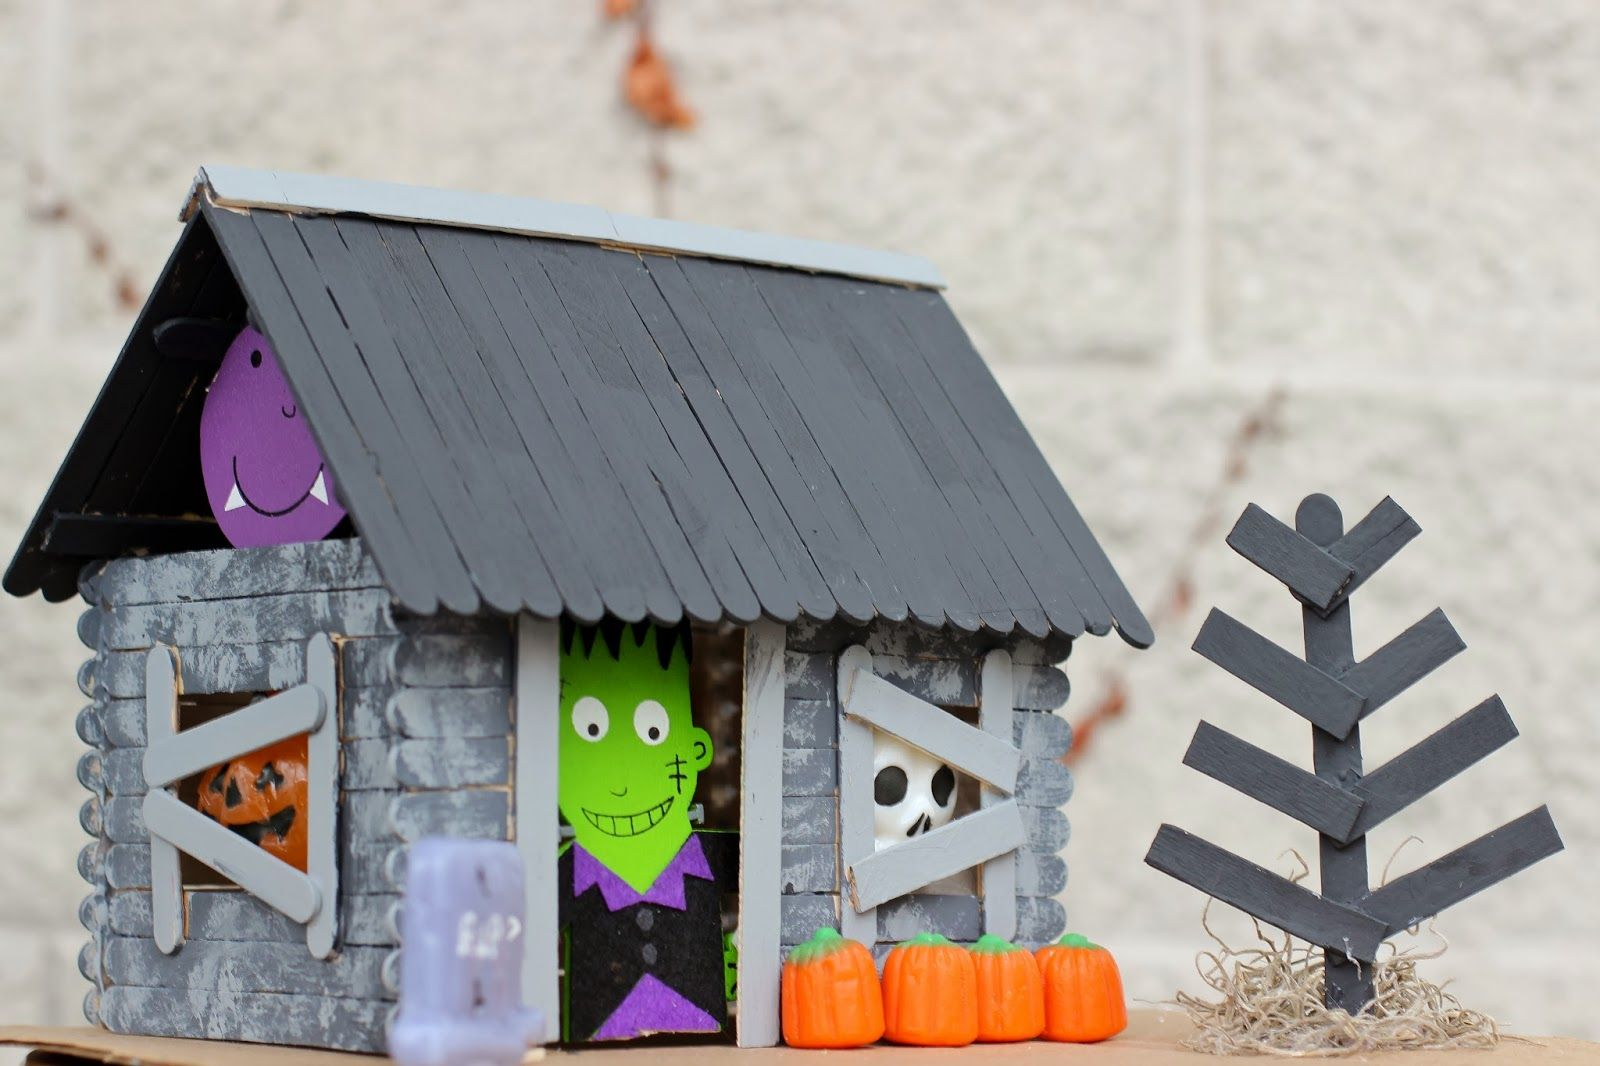 Popsicle Stick Haunted House With Instructions Included